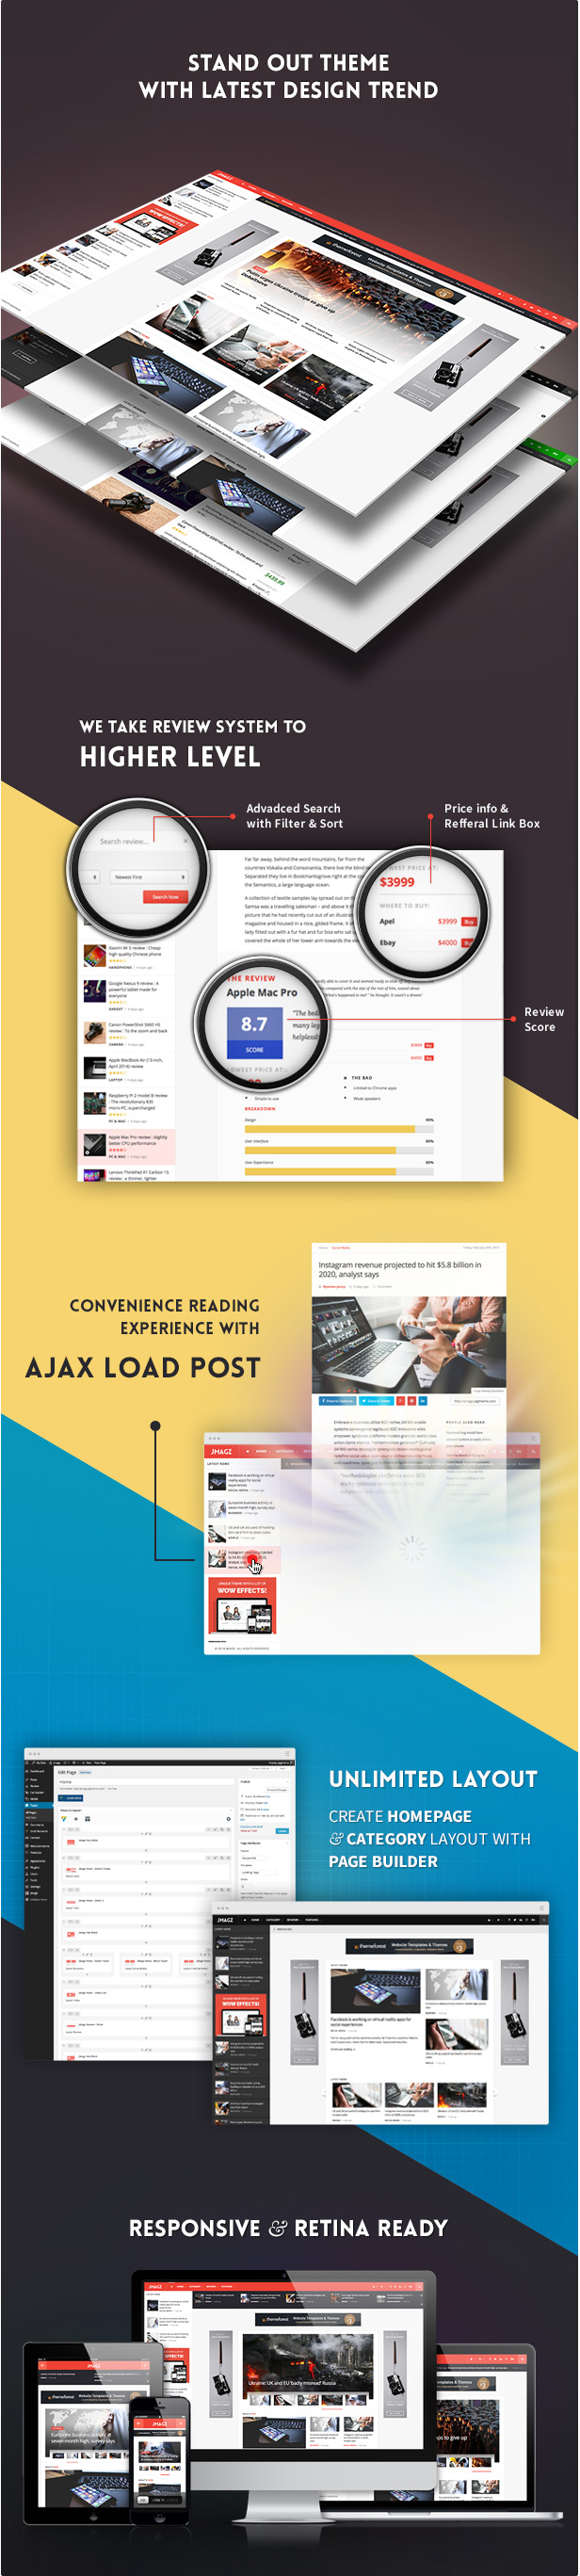 JMagz - Tech News Review Magazin WordPress Theme - 2